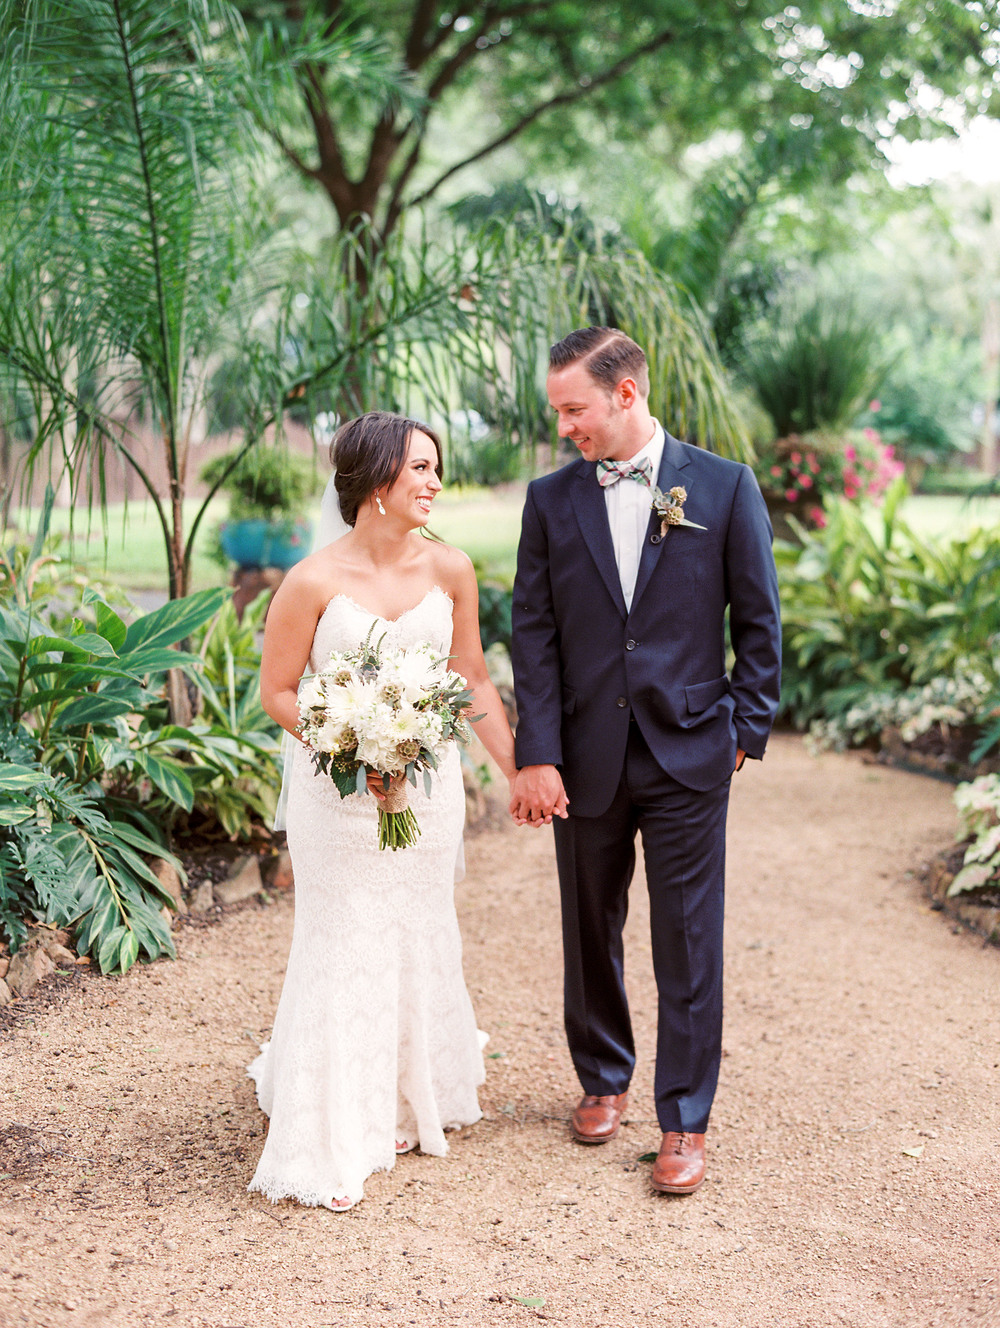 Dana Fernandez Photography Agave Road Agave Estates Houston Texas Wedding Photographer Destination Southwest Film-39.jpg